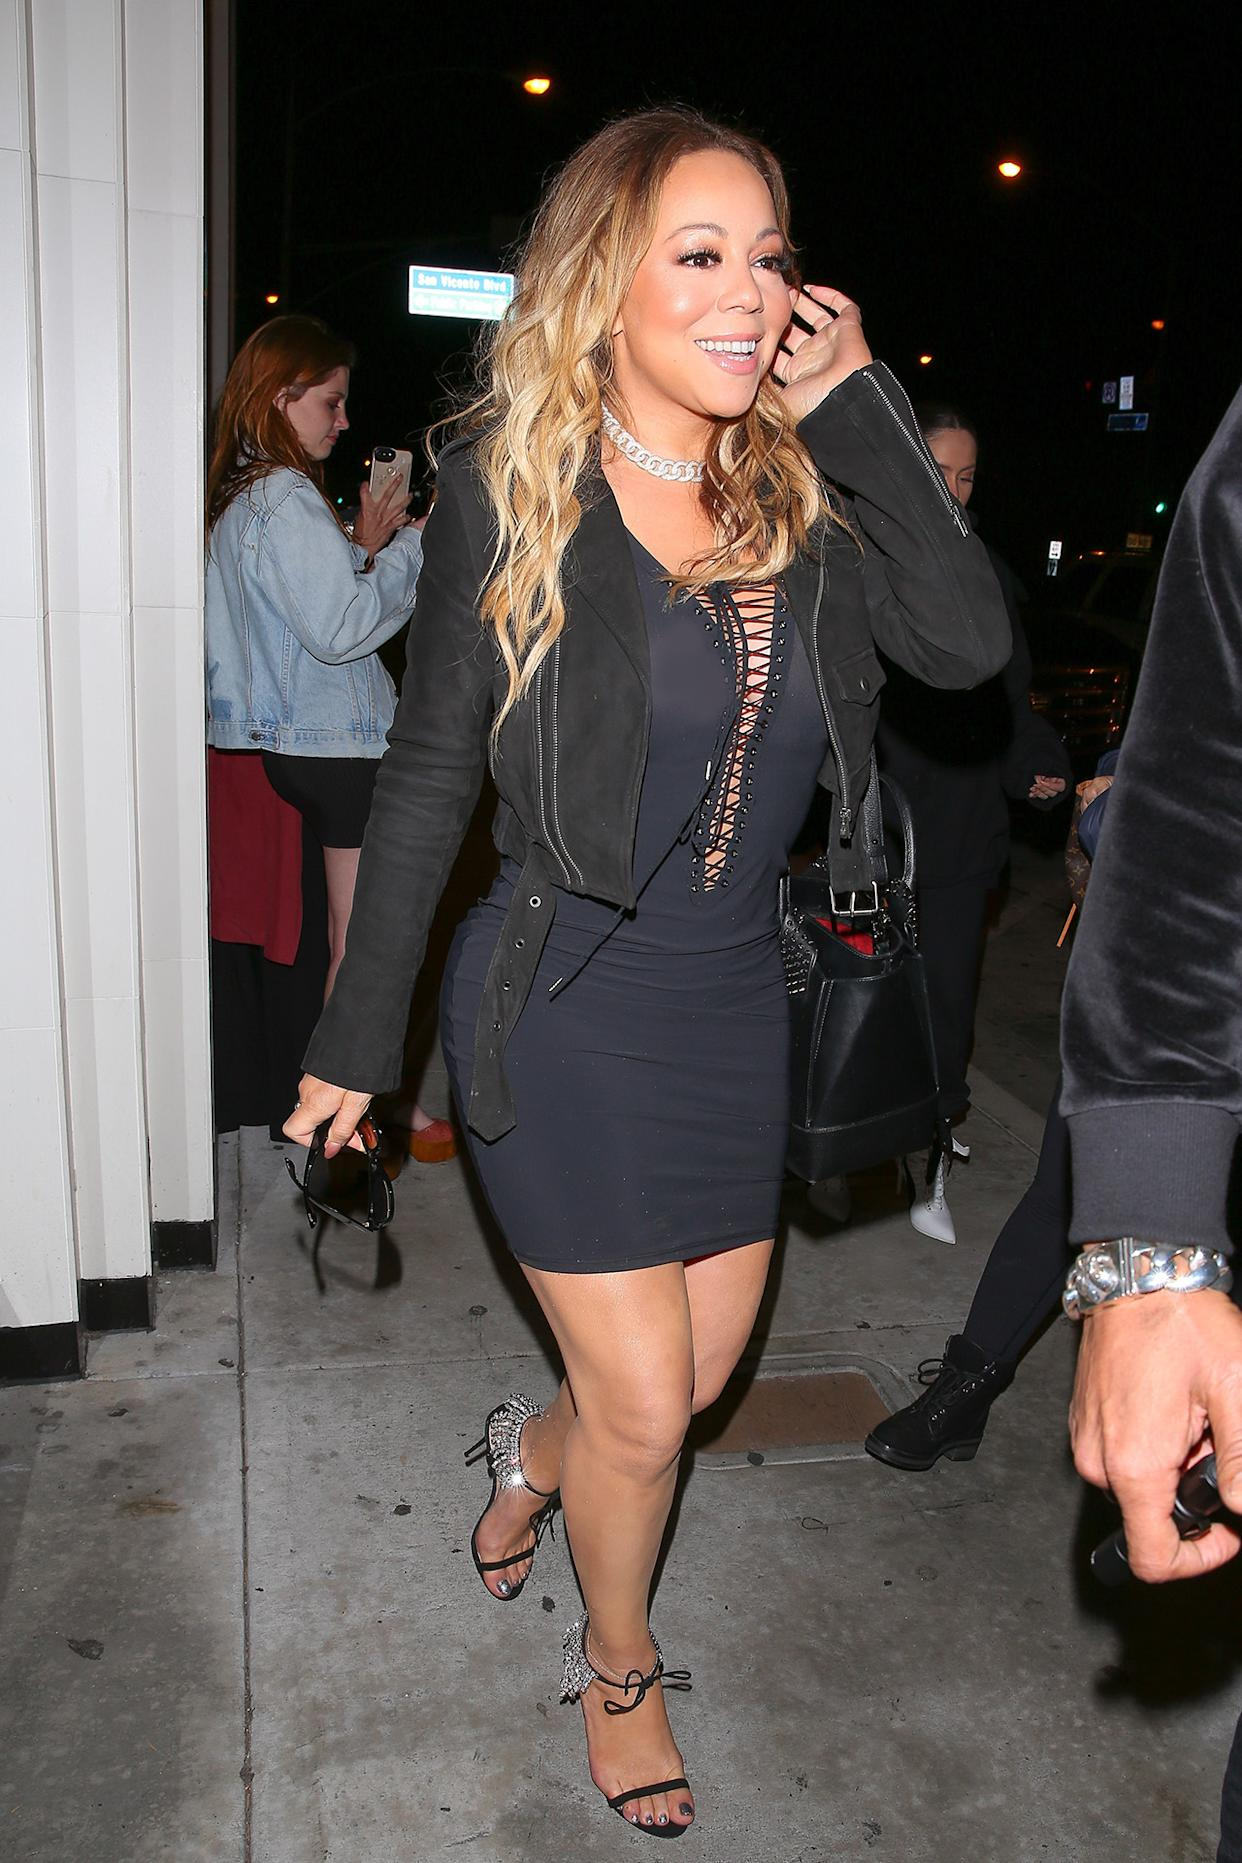 AG_183118 -  - West Hollywood, CA - Mariah Carey is spotted heading to Catch LA. The songbird has a major wardrobe mishap as she goes braless in a sheer mini dress exposing more than she intended to. She smiles unknowingly as she heads to a late dinner at the hotspot.  Pictured: Mariah Carey  AKM-GSI 23 MARCH 2017  BYLINE MUST READ: Maciel / AKM-GSI    Maria Buda (917) 242-1505 mbuda@akmgsi.com   Mark Satter (317) 691-9592 msatter@akmgsi.com or sales@akmgsi.com